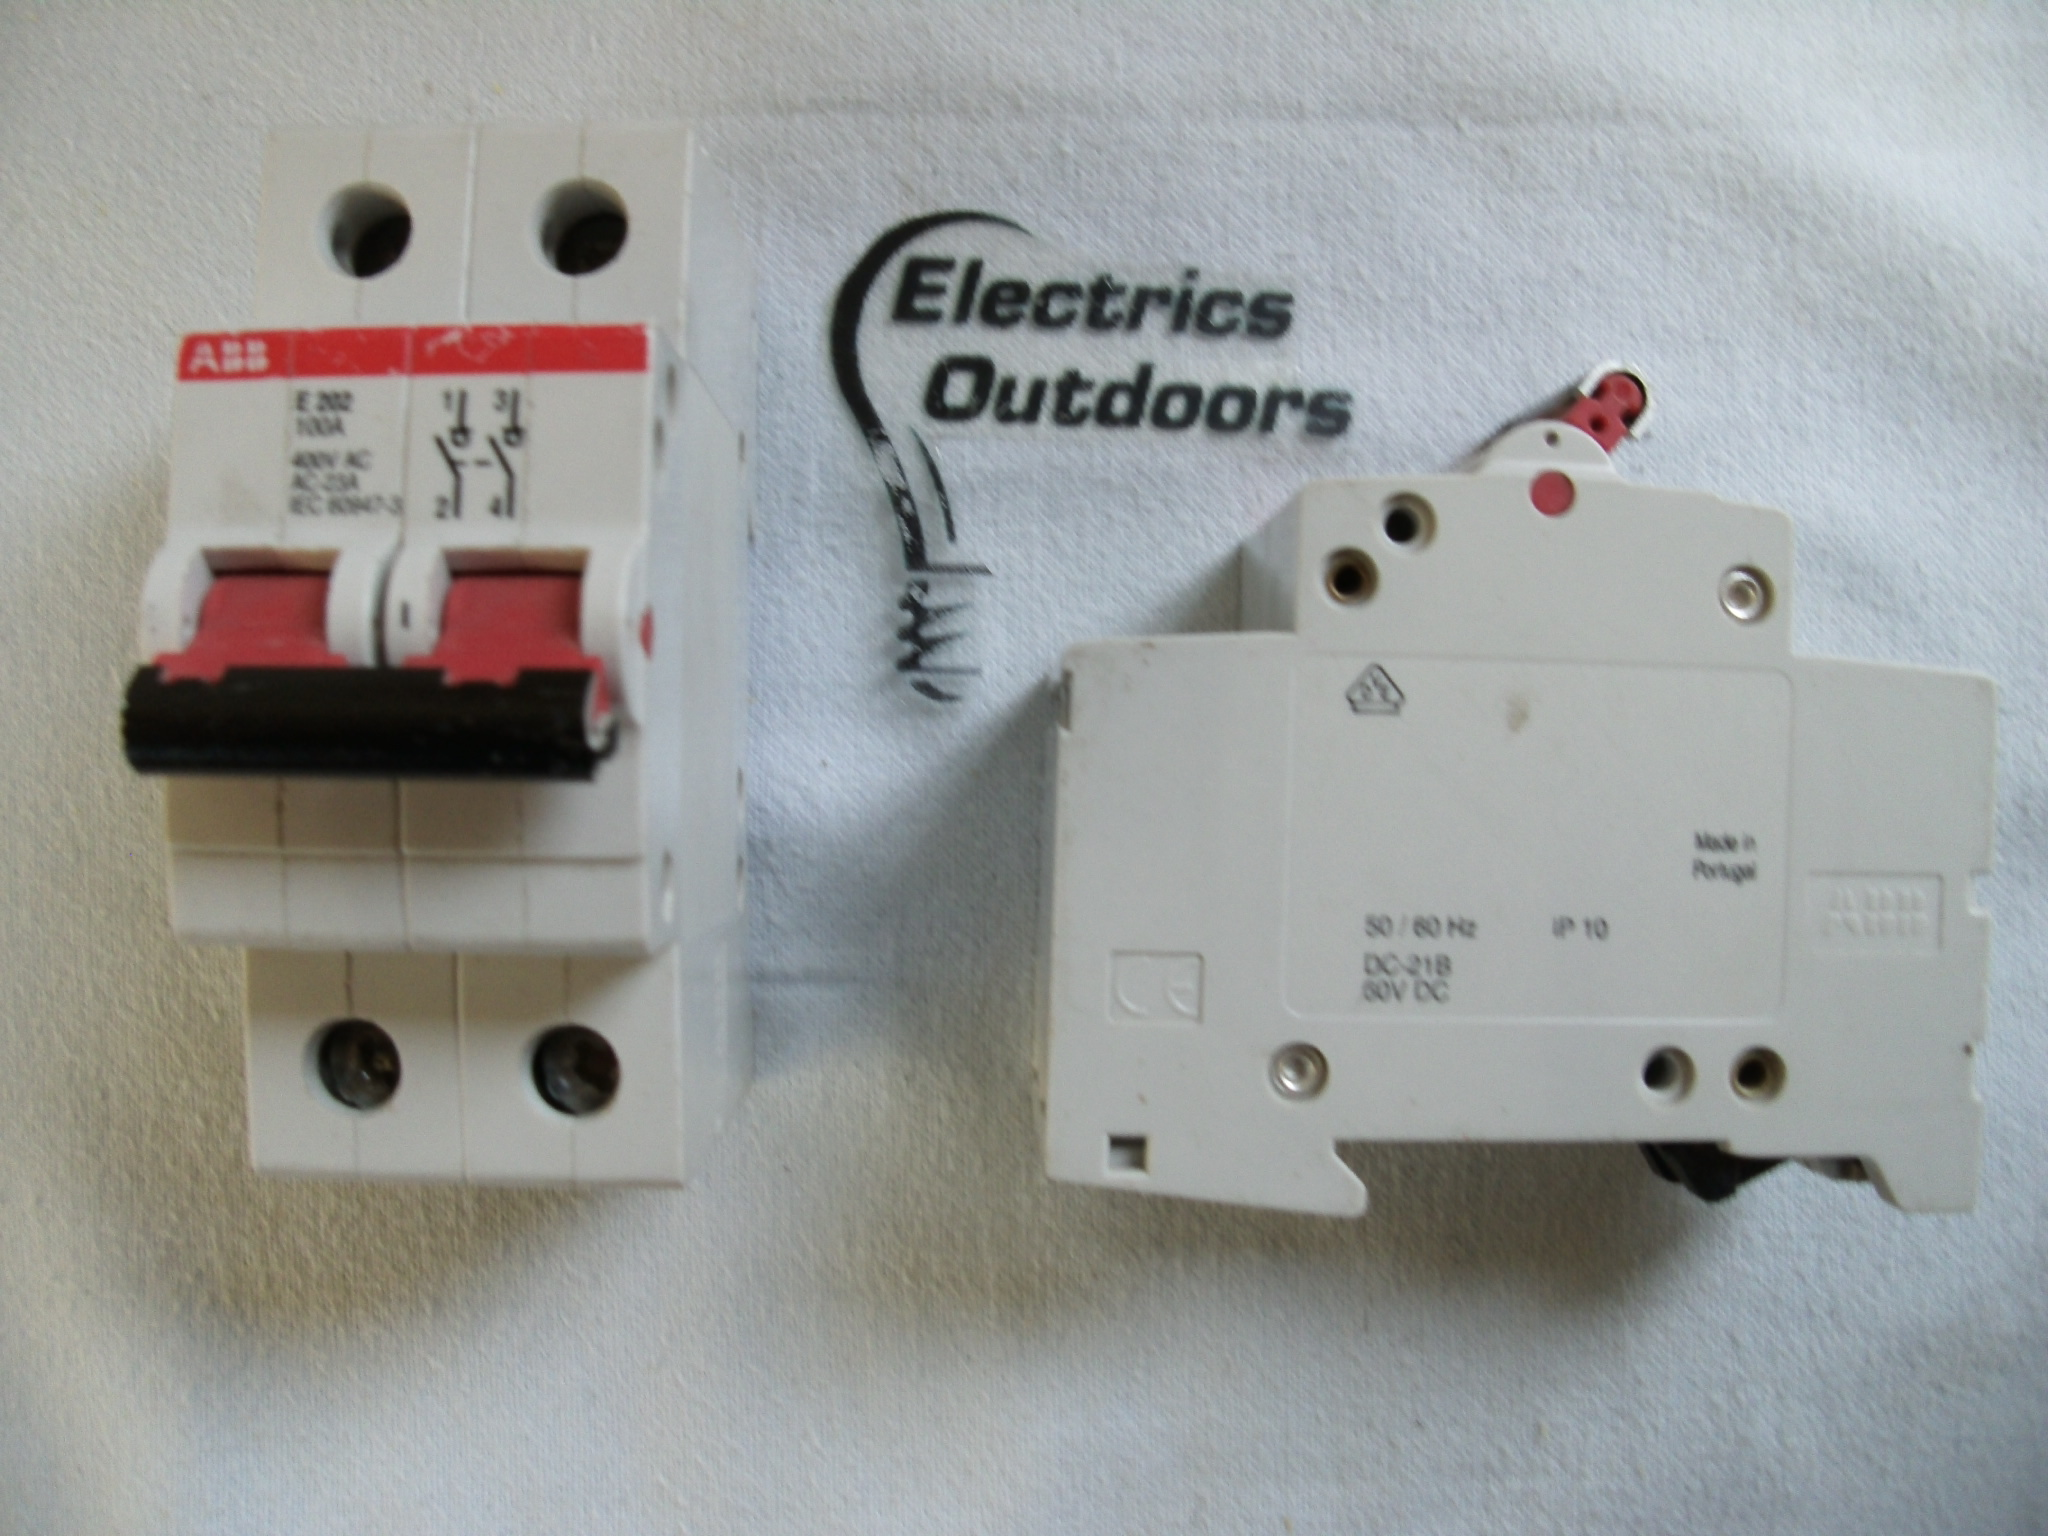 ABB 100 AMP MAIN SWITCH DISCONNECTOR 400V E202 IDC-21B EC 60947